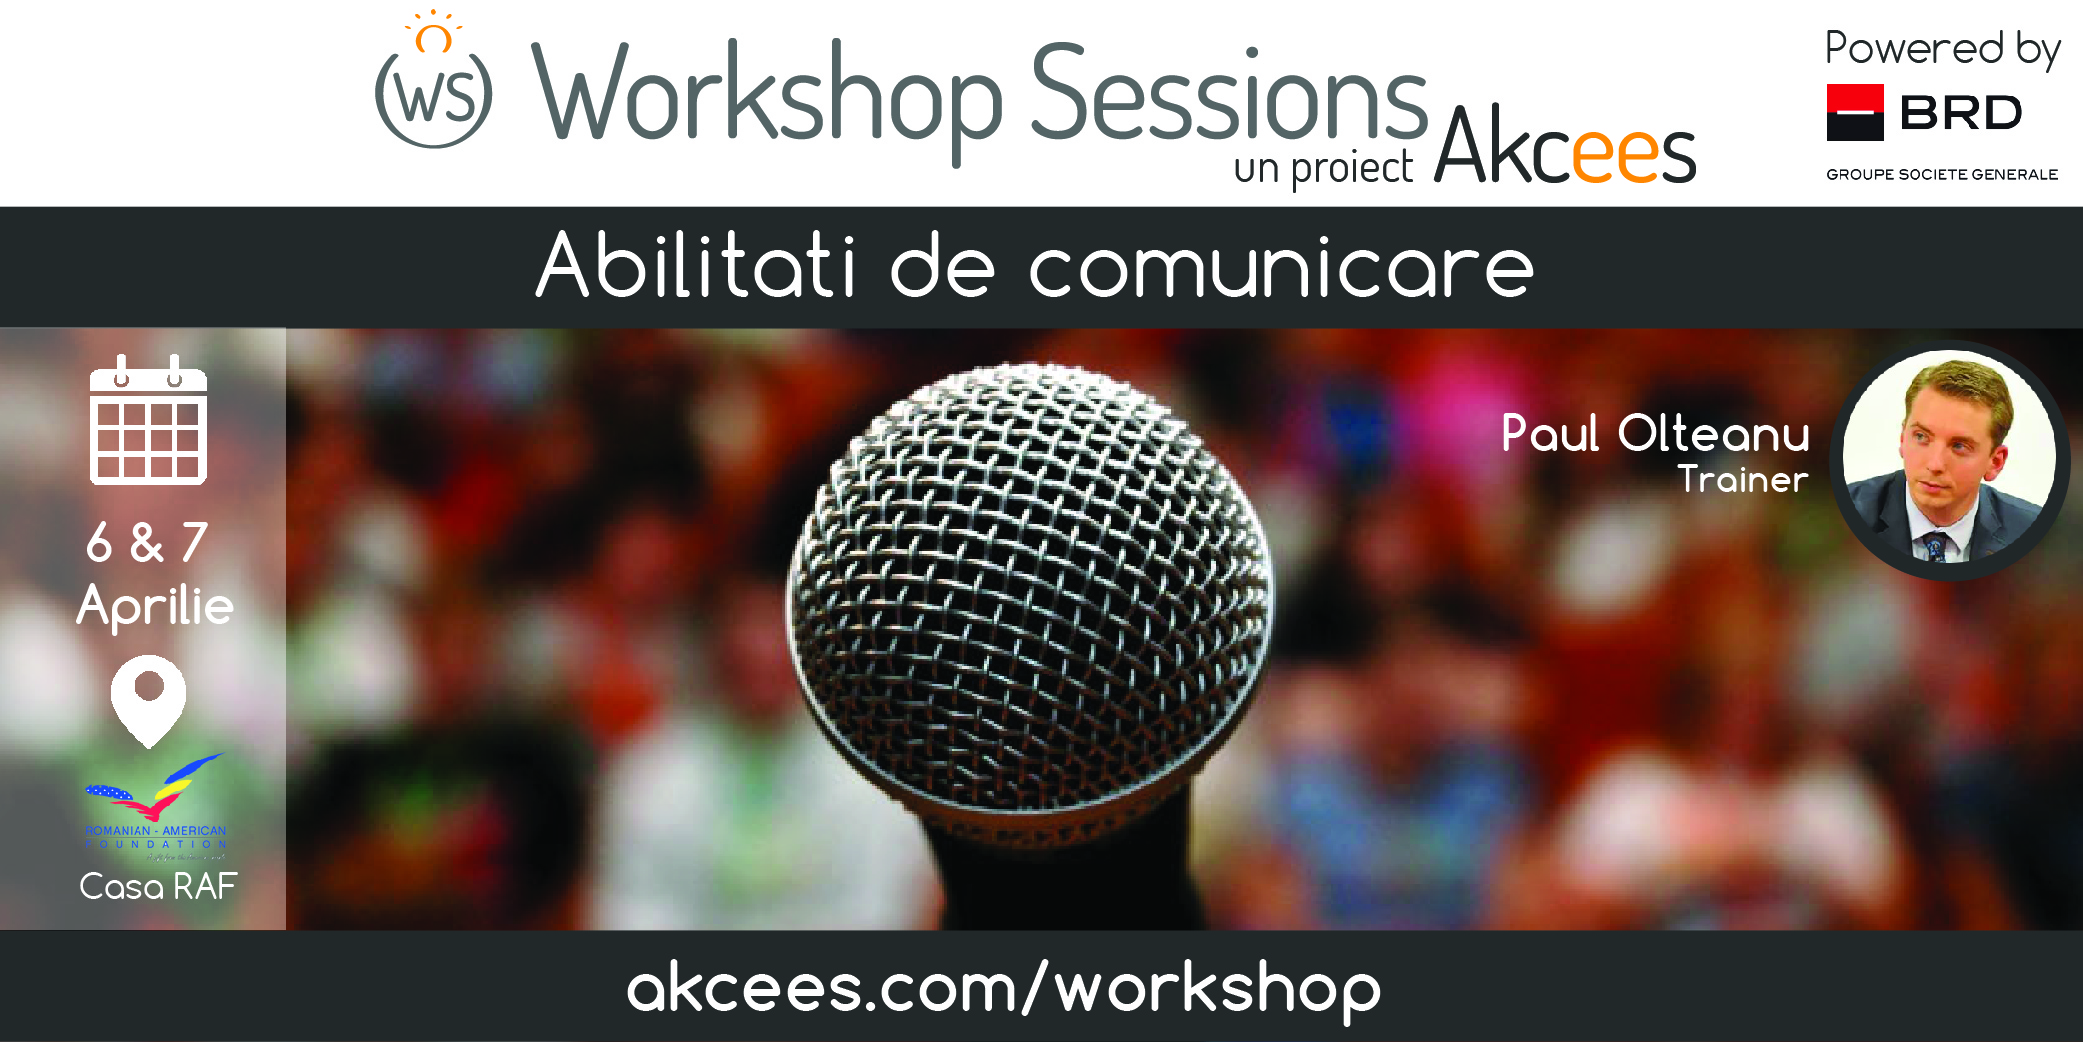 Vino si tu la Academia Workshop Sessions!